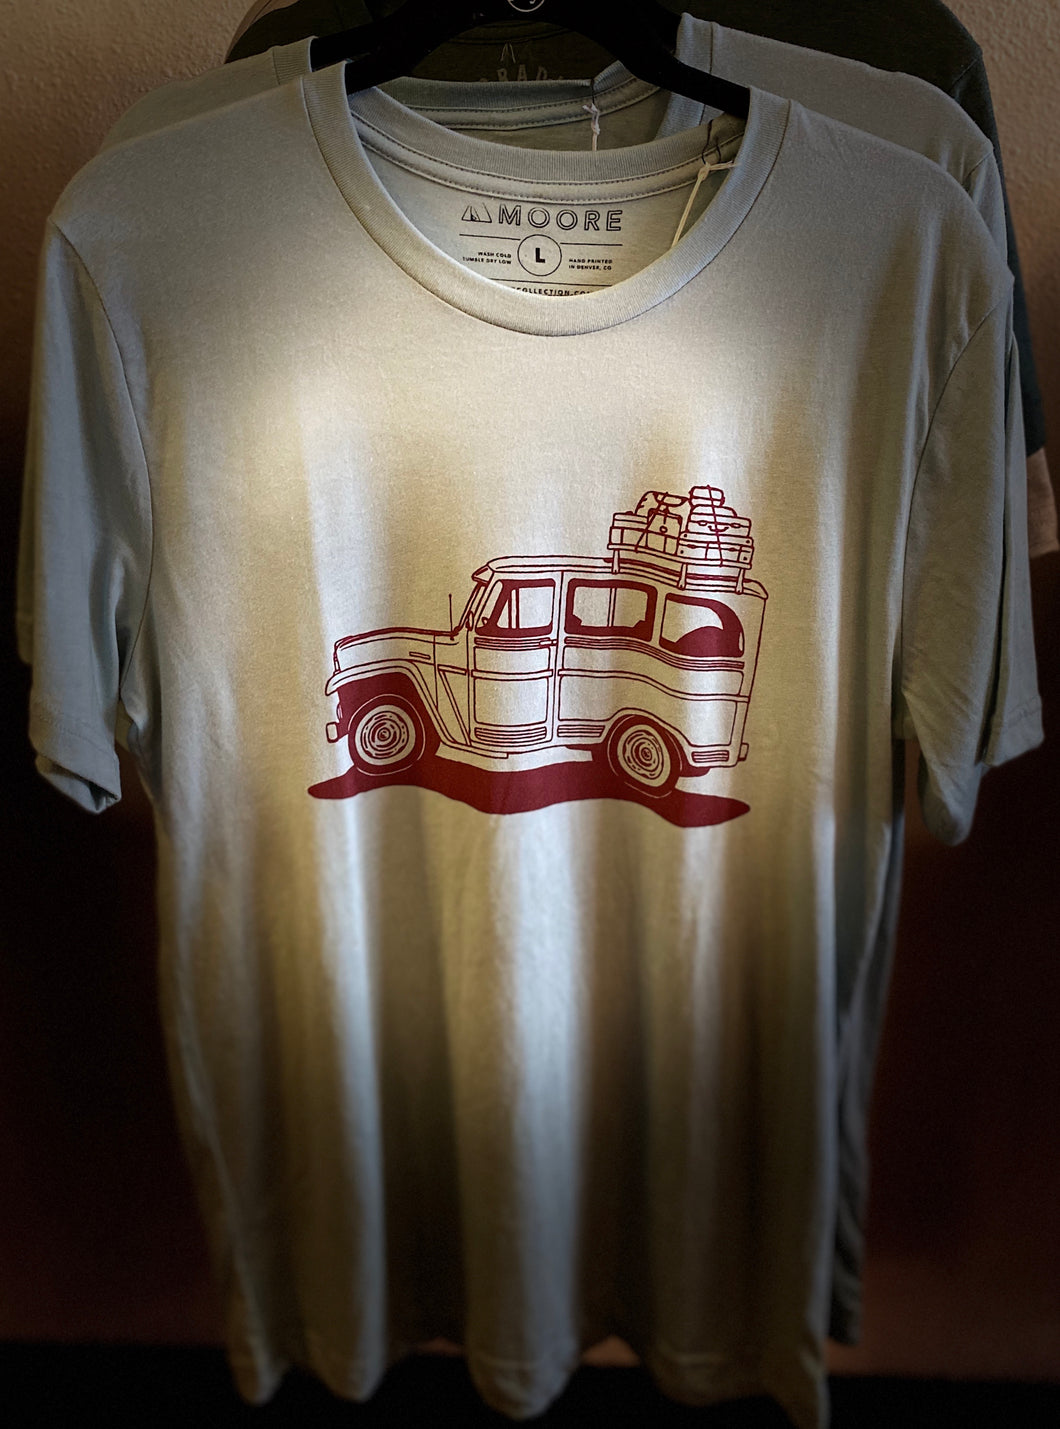 Moore Traveling Jeep T-Shirt